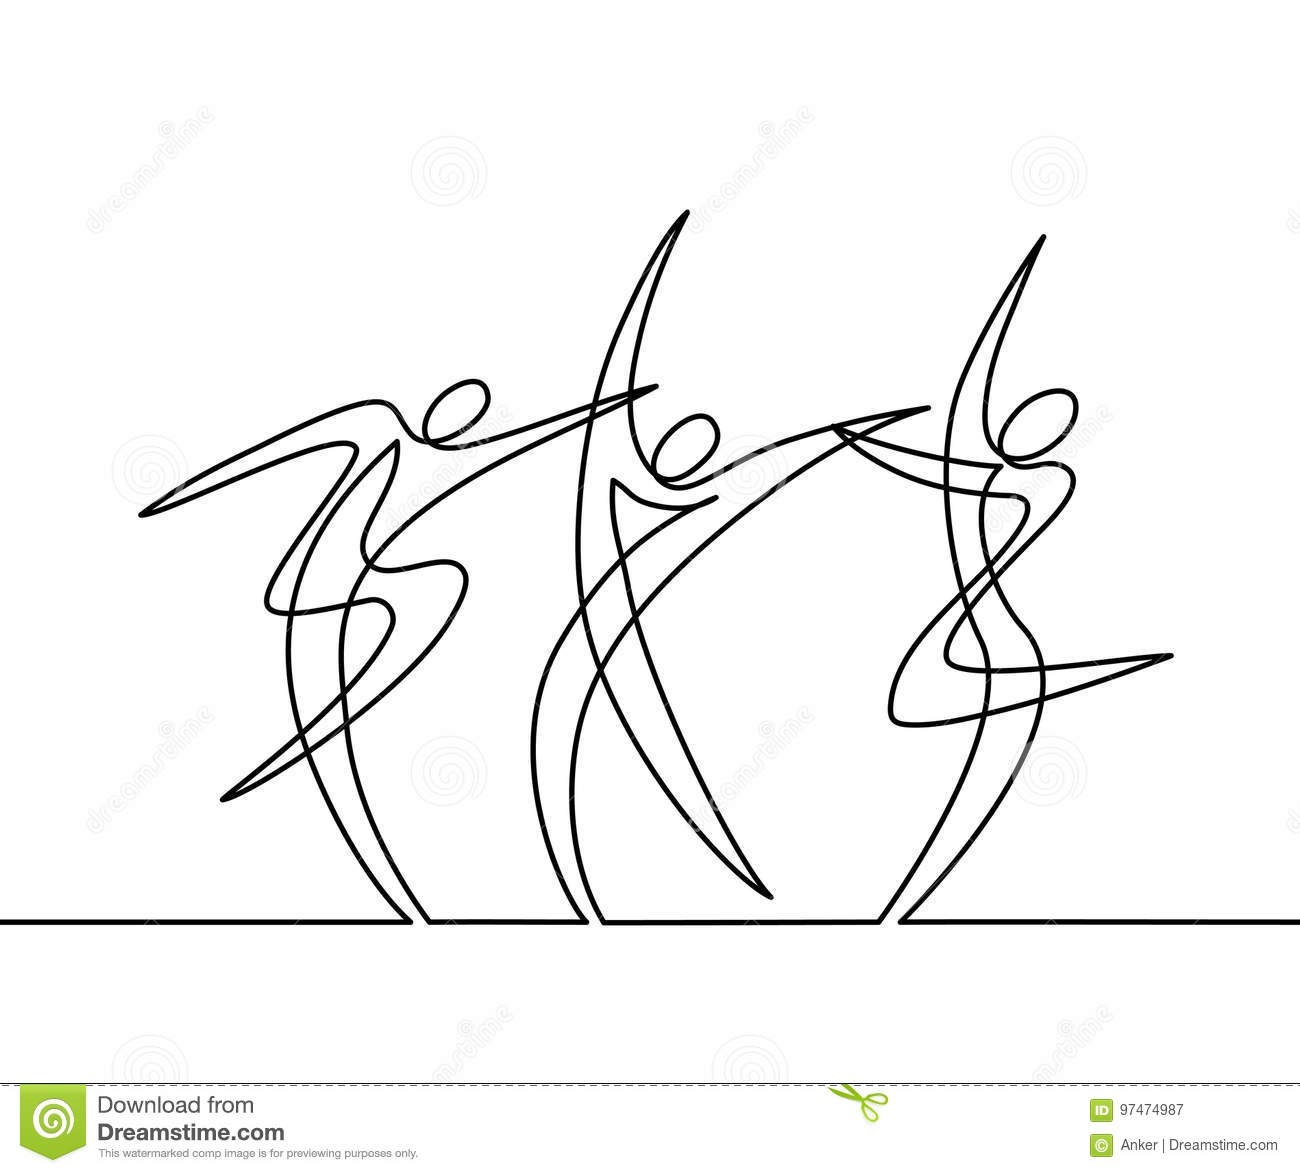 Line Art Illustration : Continuous line drawing of abstract dancers stock vector